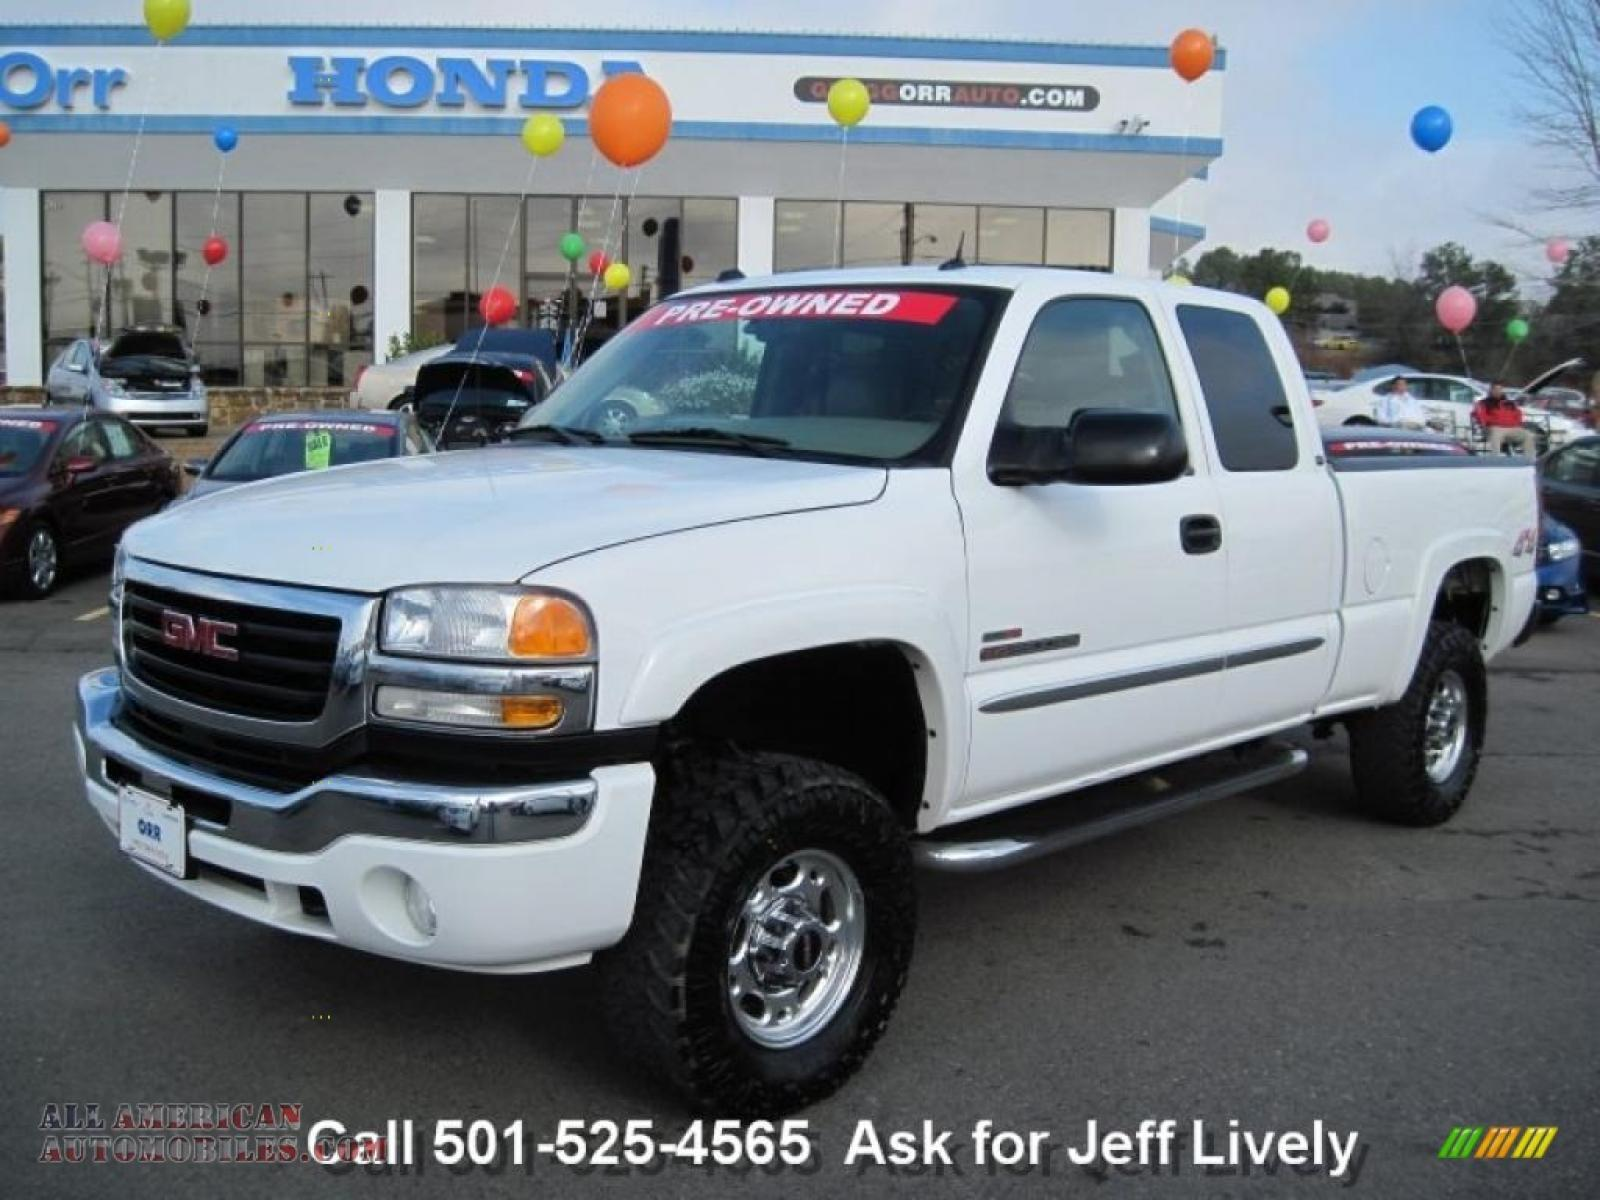 Gmc gallery 2005 gmc sierra 2500hd 1 gmc sierra 2500hd 1 2005 gmc sierra 2500hd